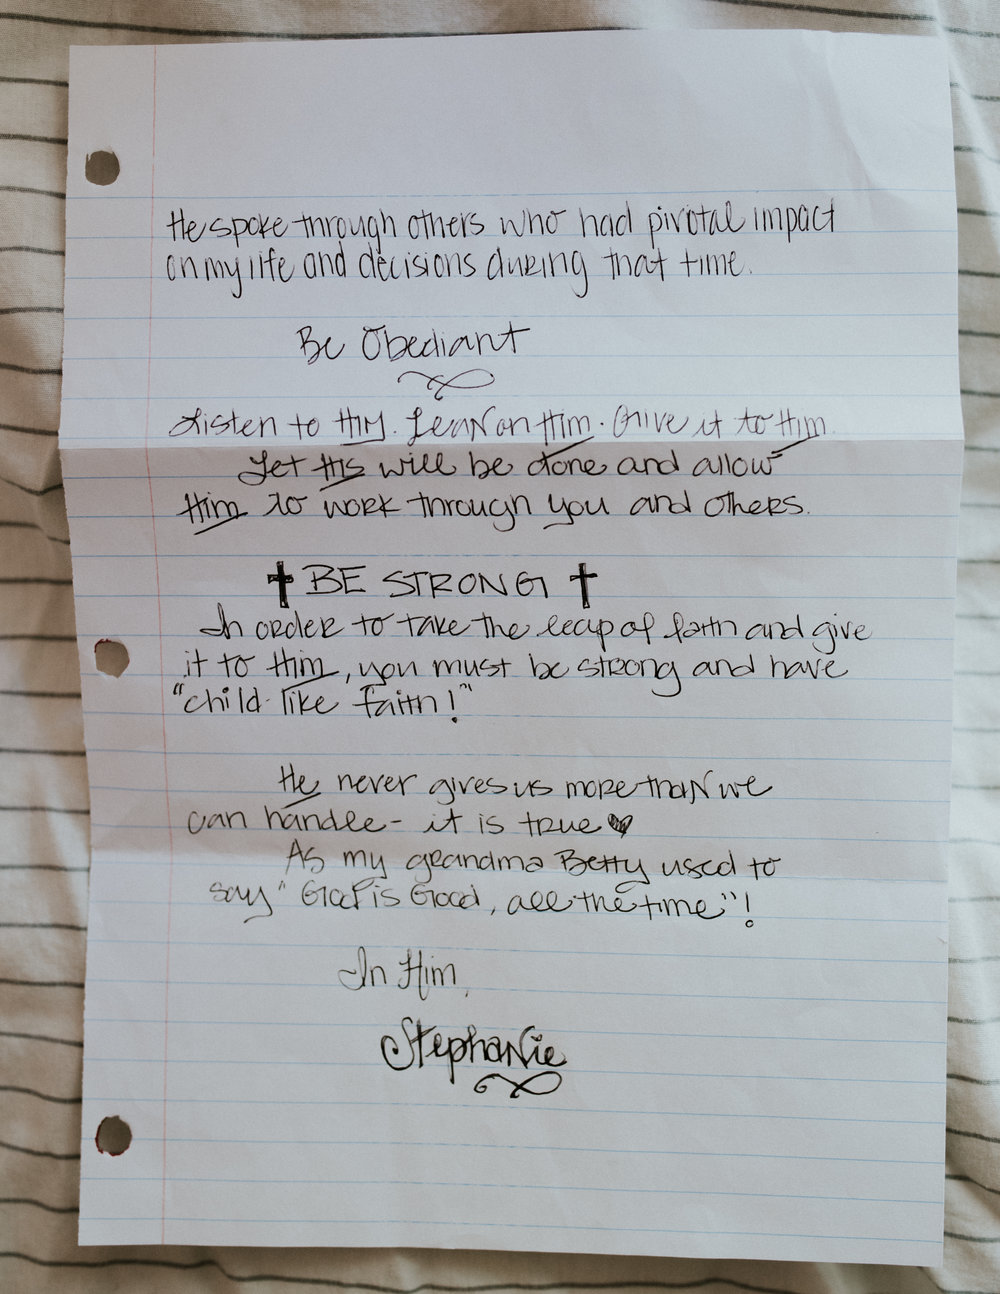 The-Catholic-Woman-Stephanie-Marmora-Letter-2